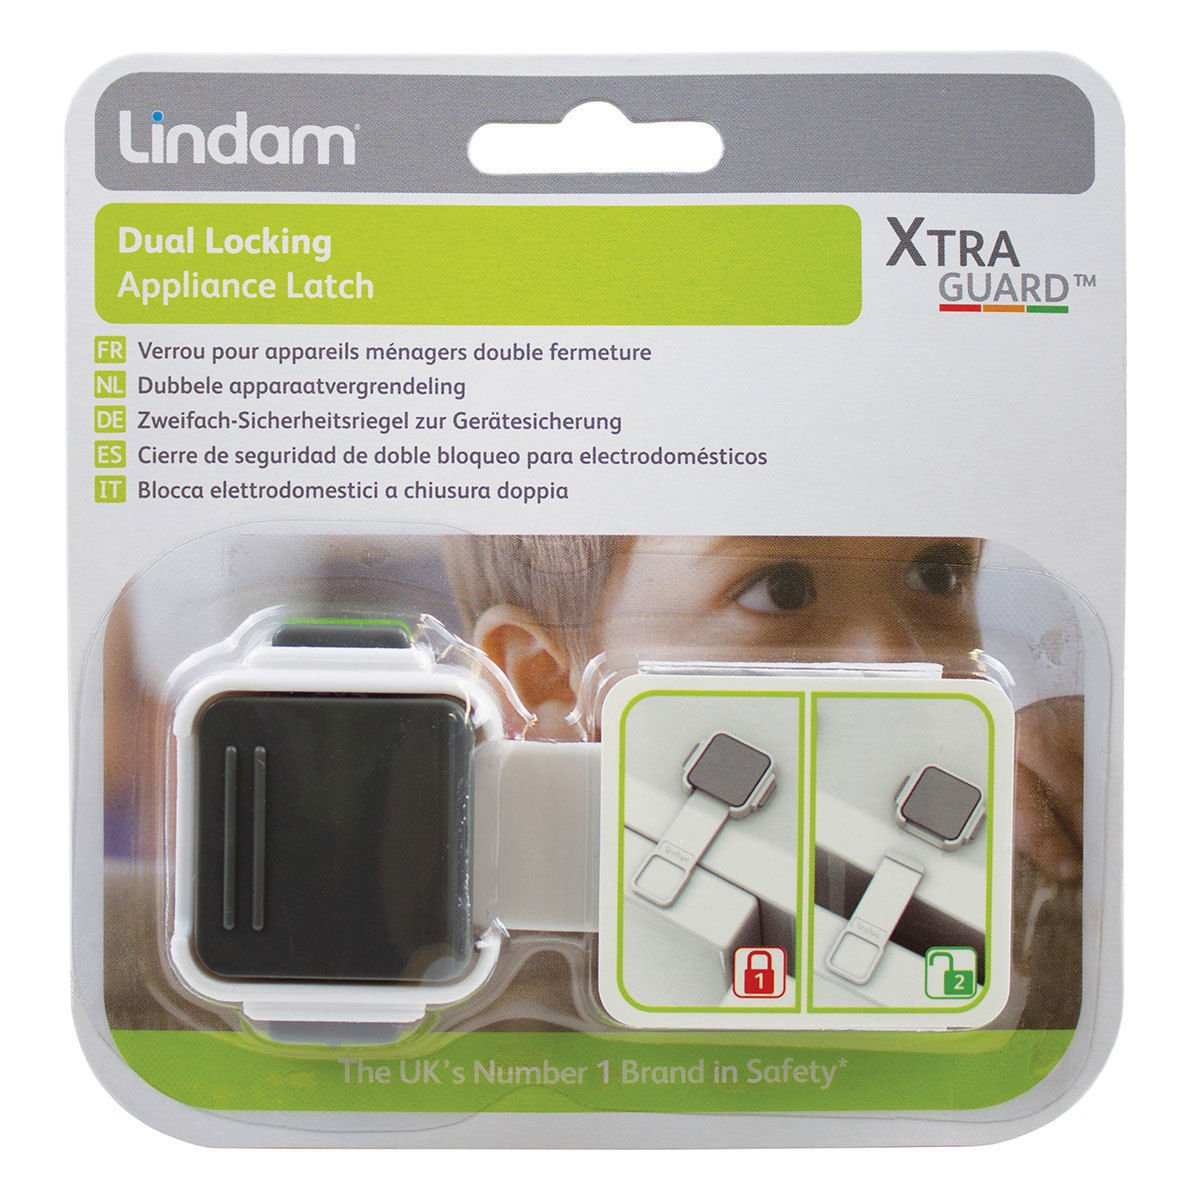 Baby Dual Locking Appliance Latch Double Lock Ultimate Safety Lindam Xtra Guard osigukltd